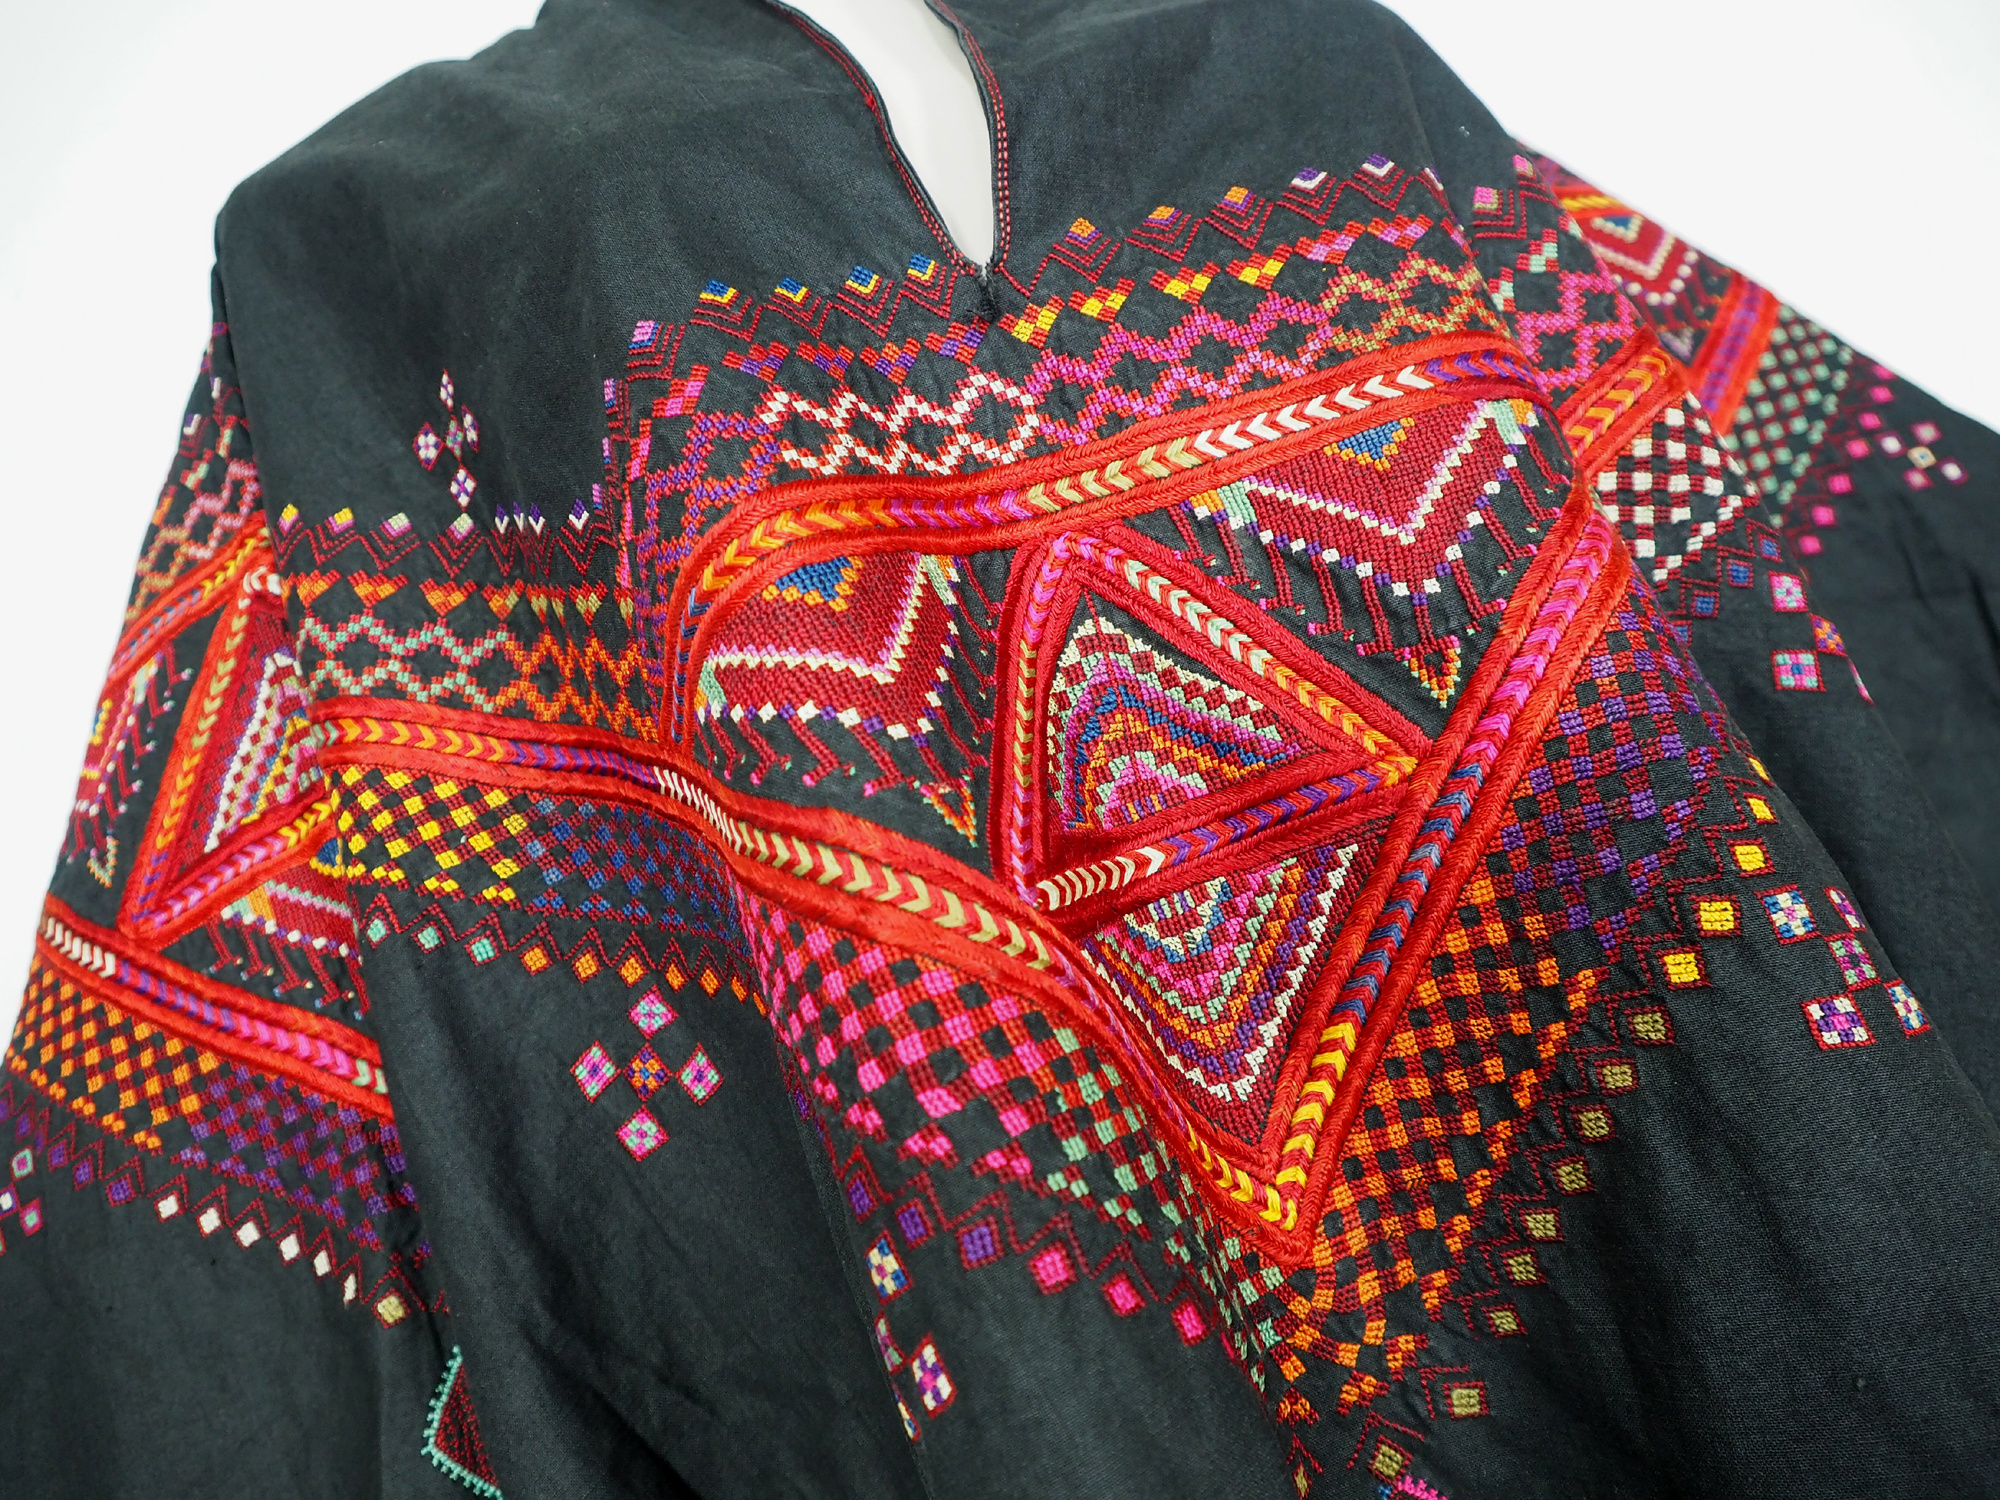 Palestinian girls embroidered ethnic dress No:26